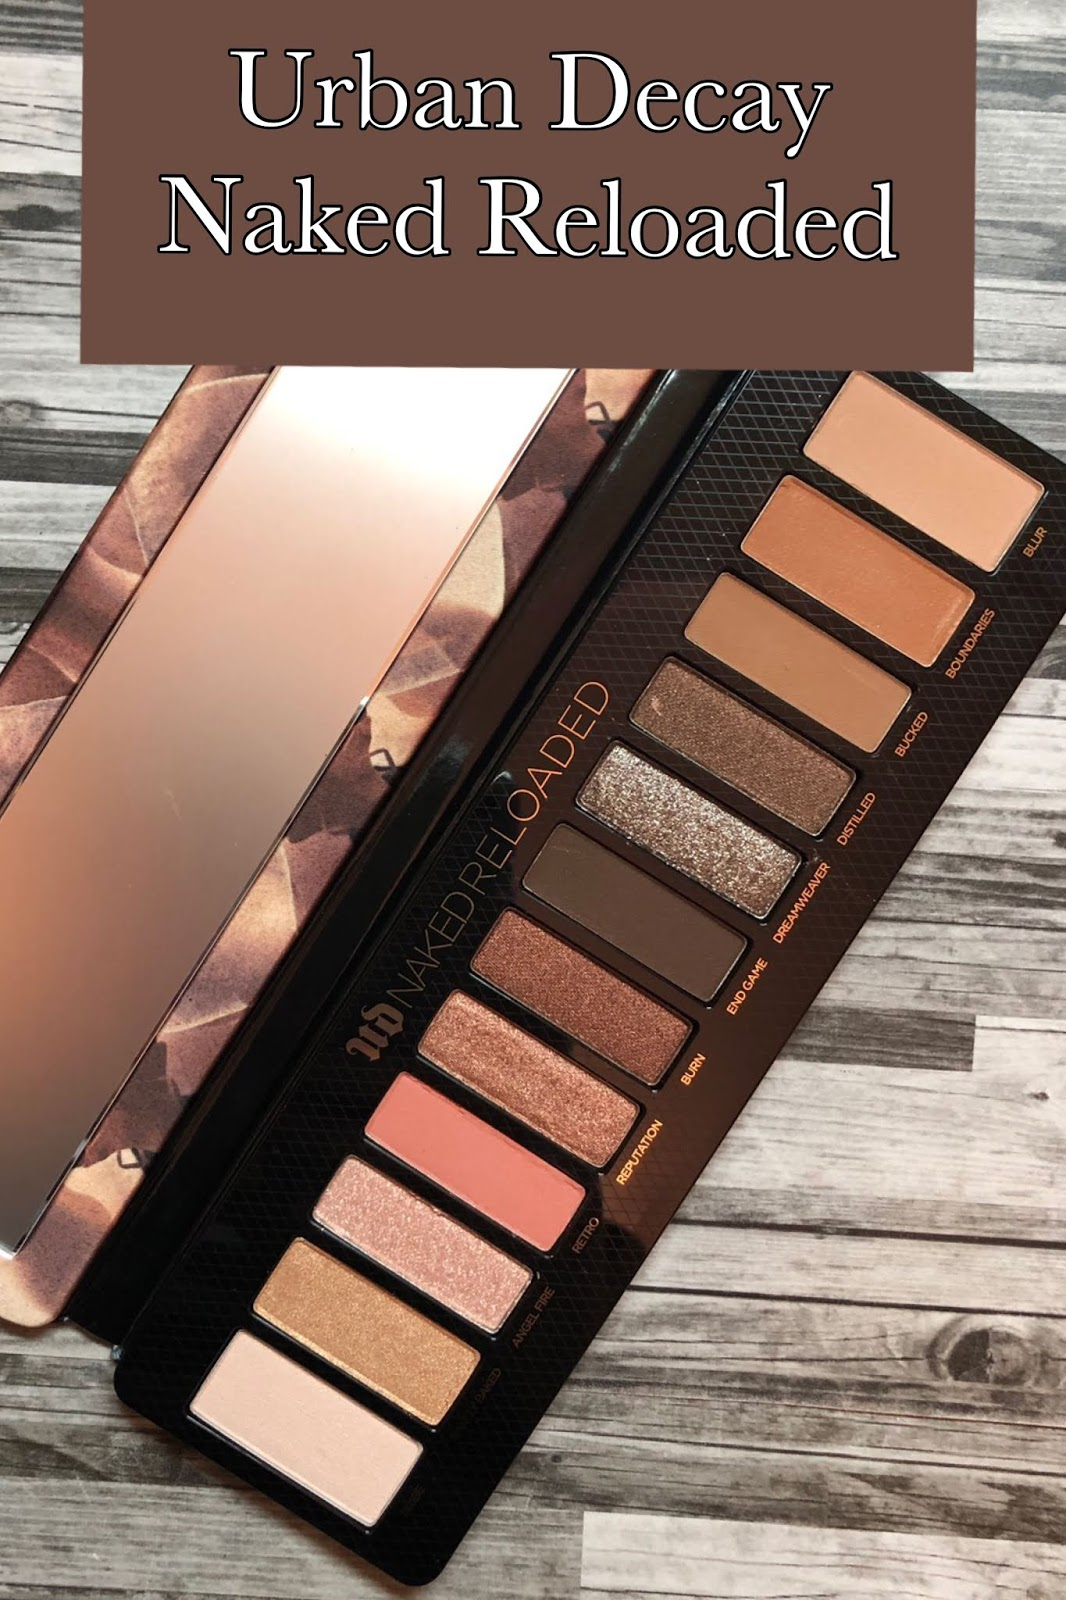 Urban Decay Naked Reloaded Review And Swatches - Mrs Q -4102